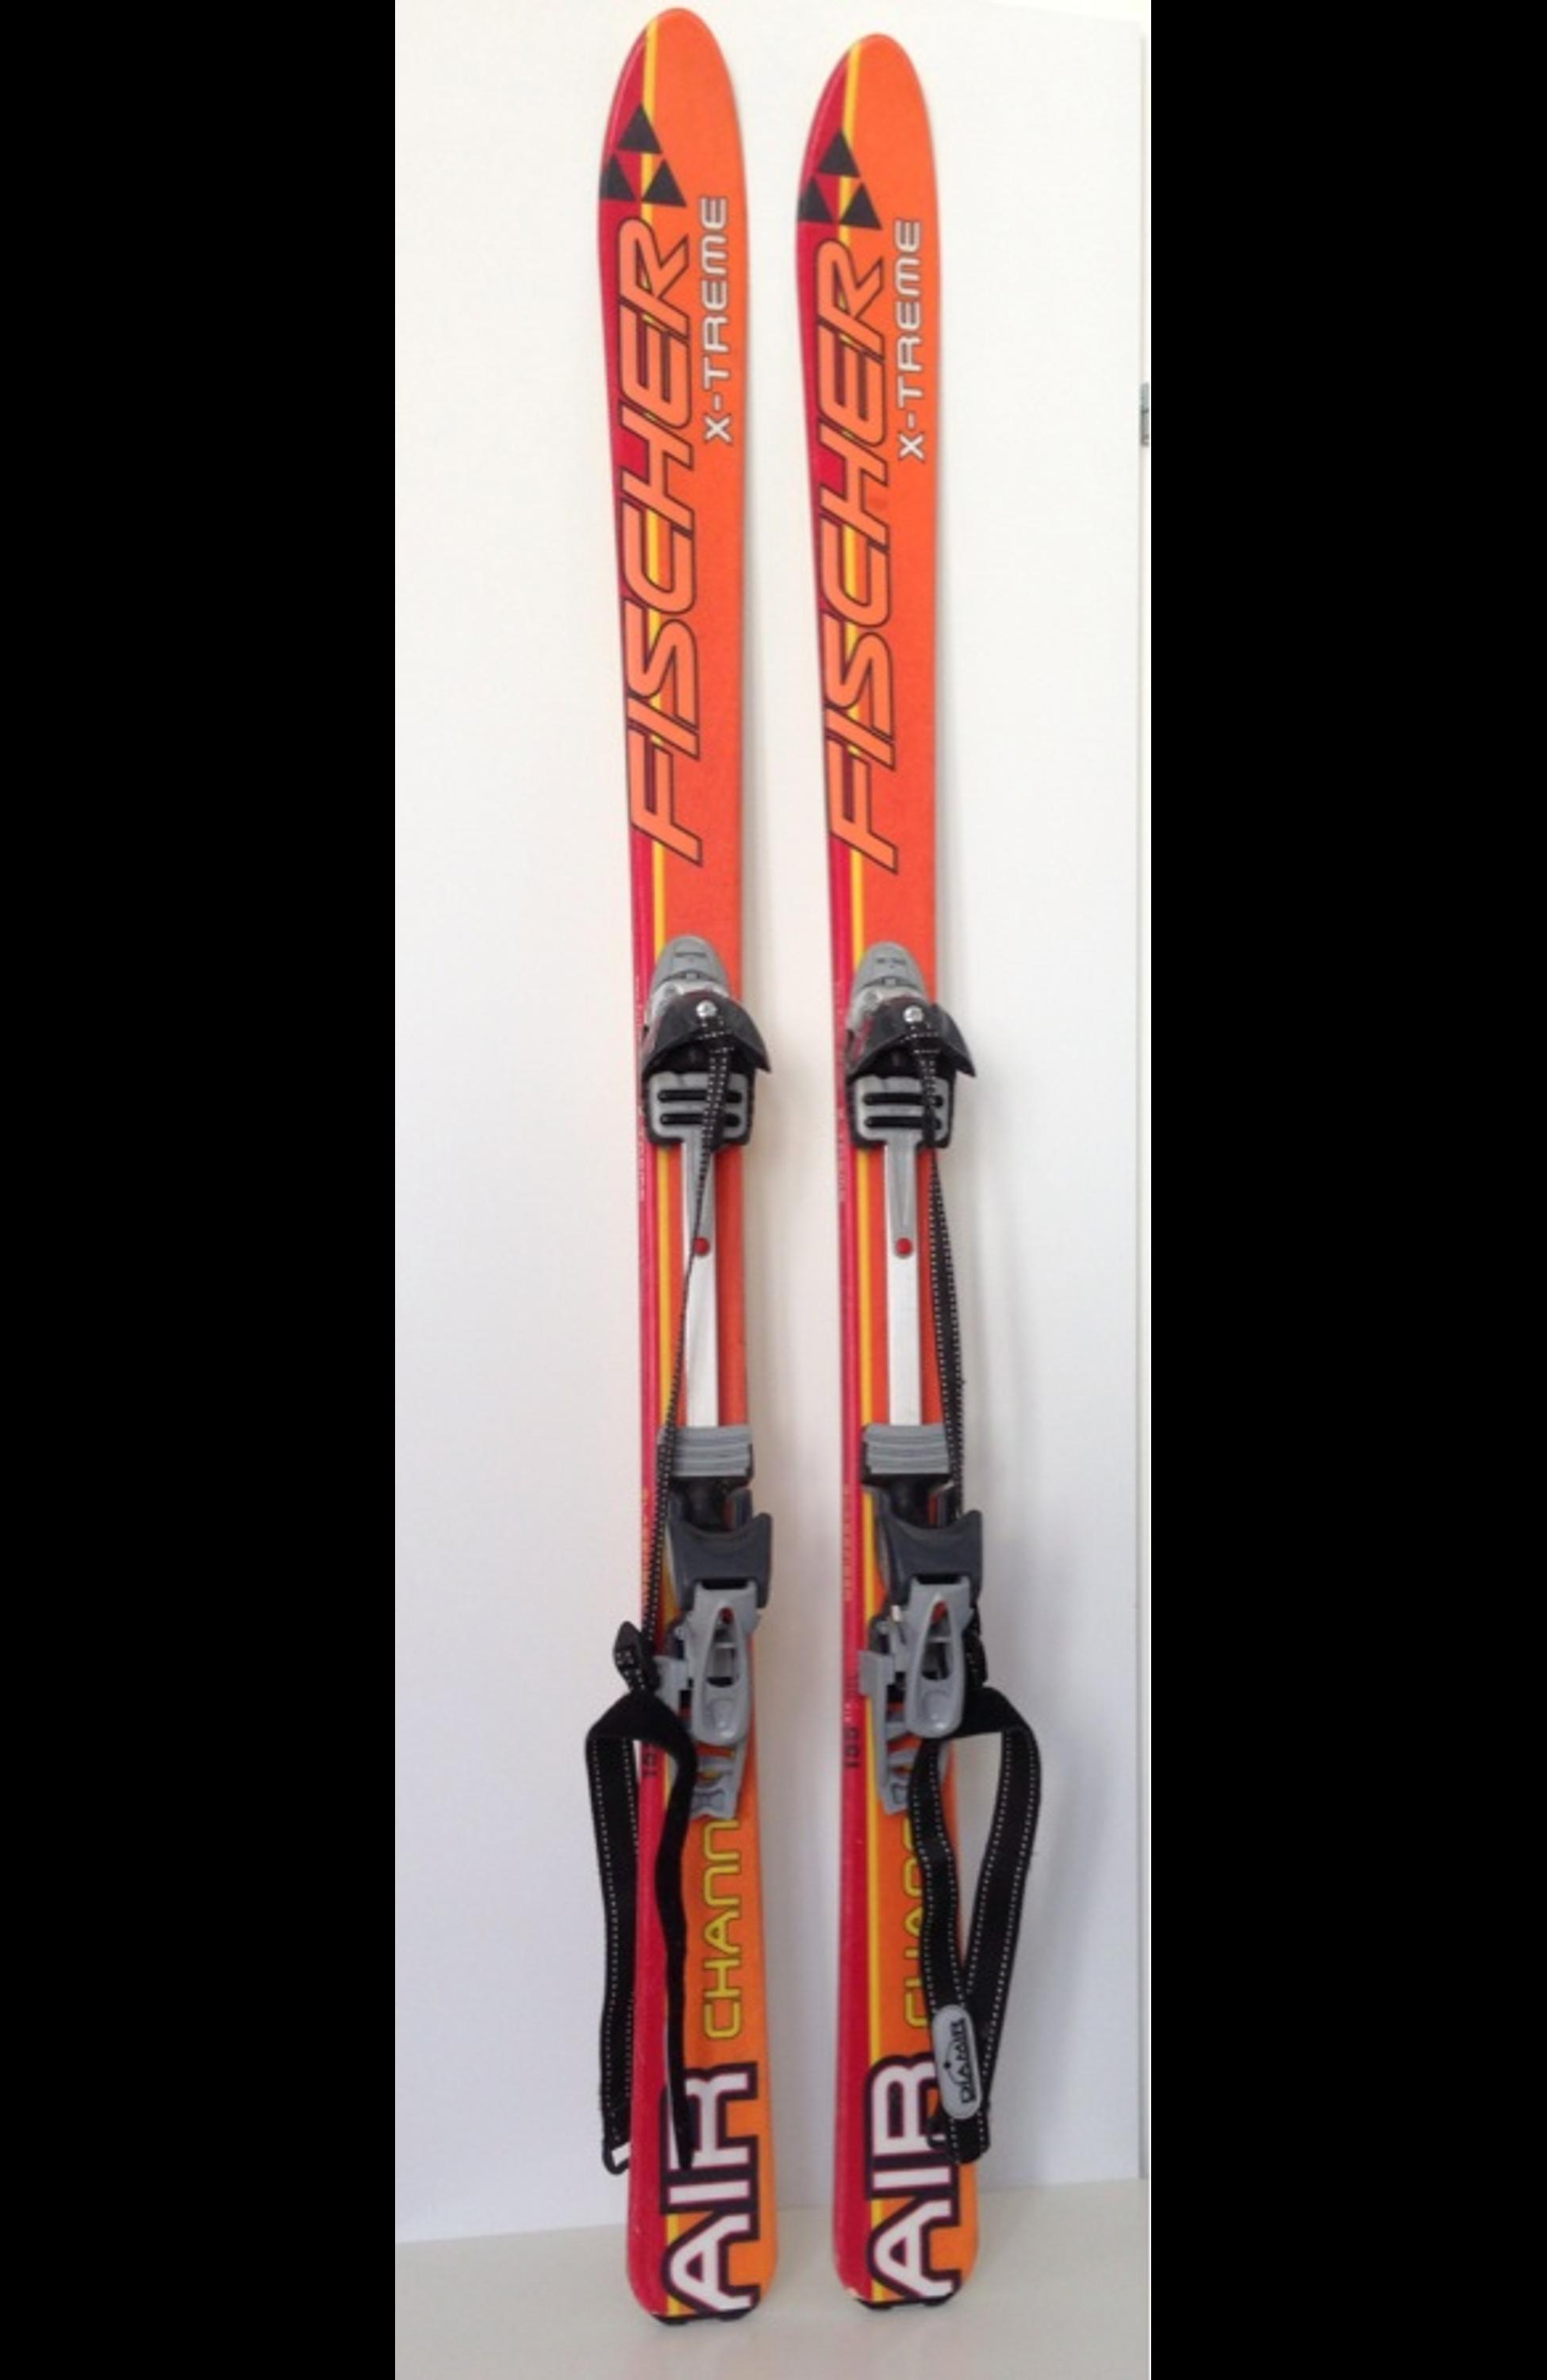 07f46d94cd Tourenski Fischer x-treme 155 in 1150 Wien for €99.00 for sale - Shpock